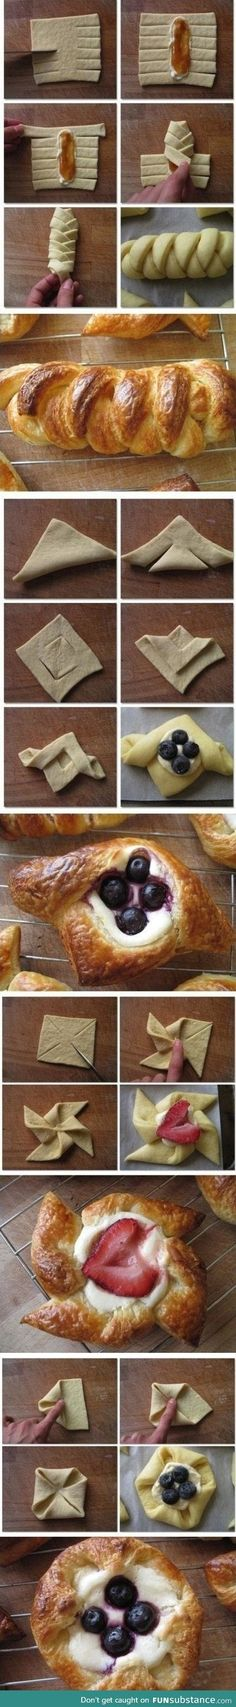 The art of folding pastry